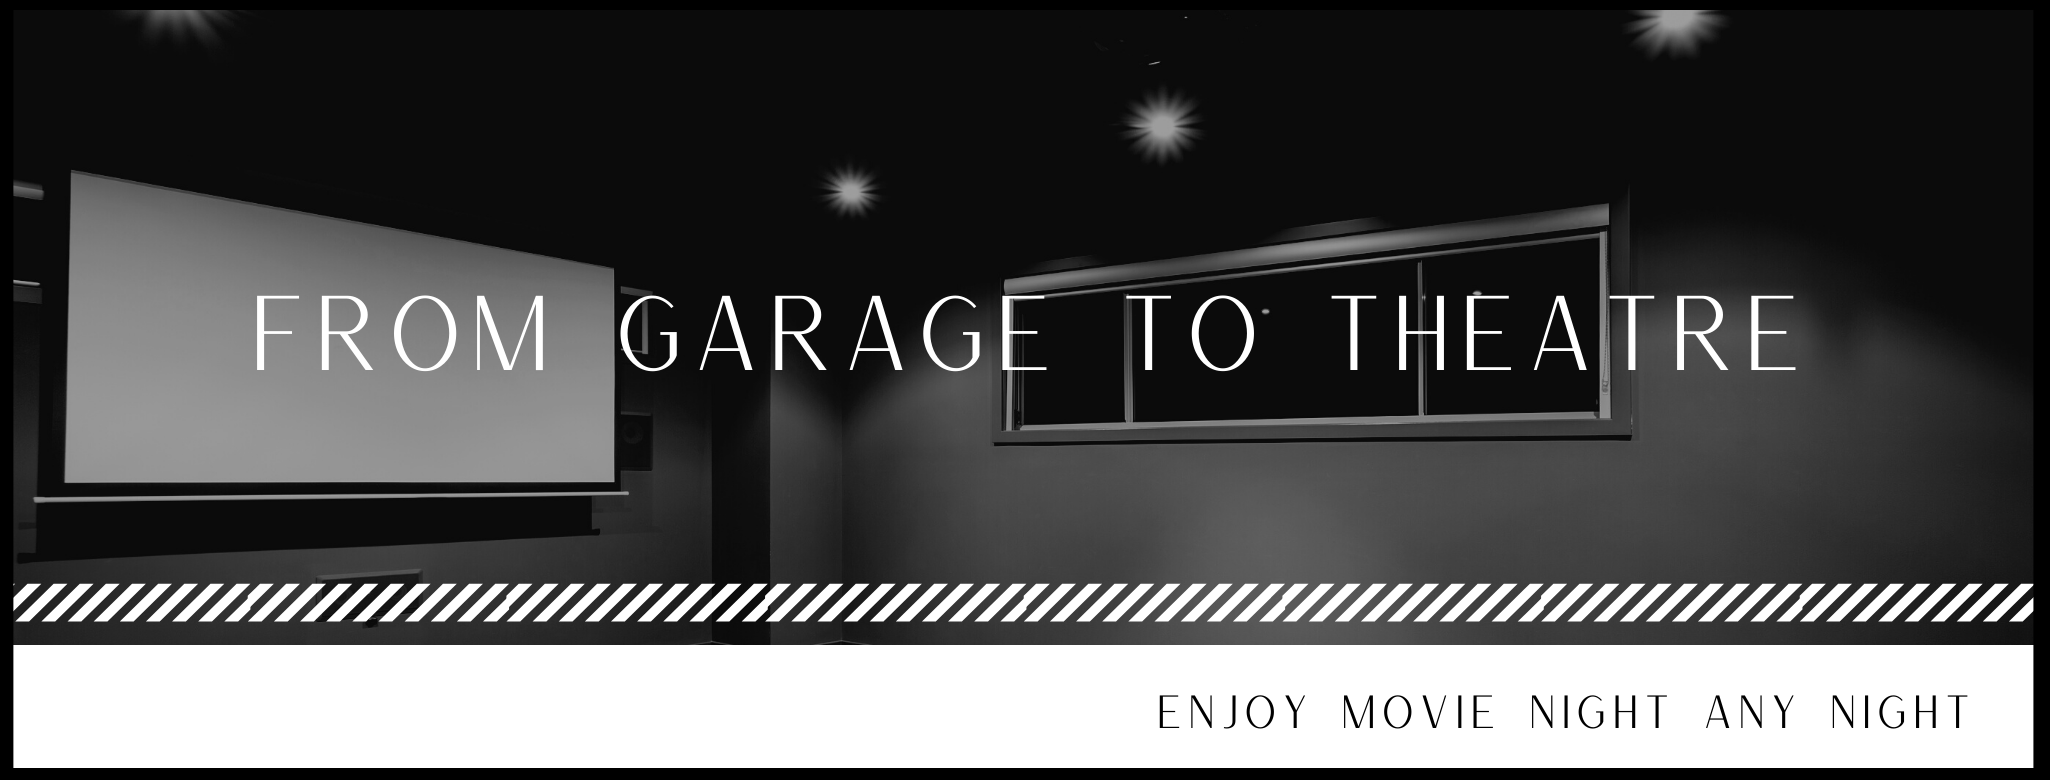 FROM GARAGE TO THEATRE BANNER